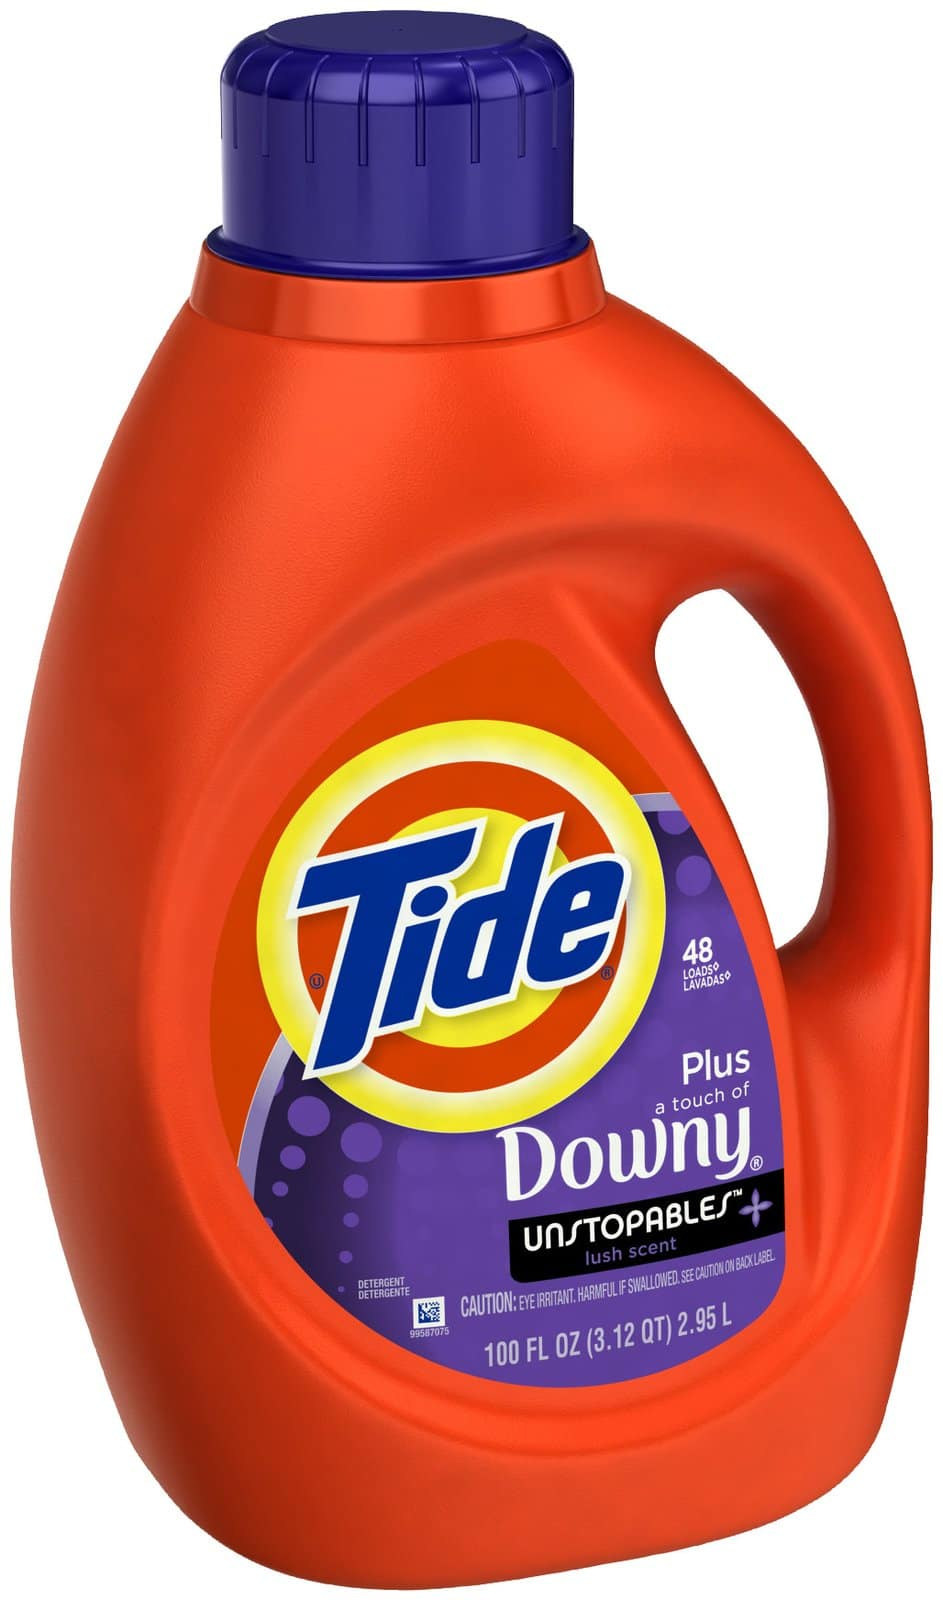 Save $2.00 off when you buy two Tide Detergents or Tide Boost